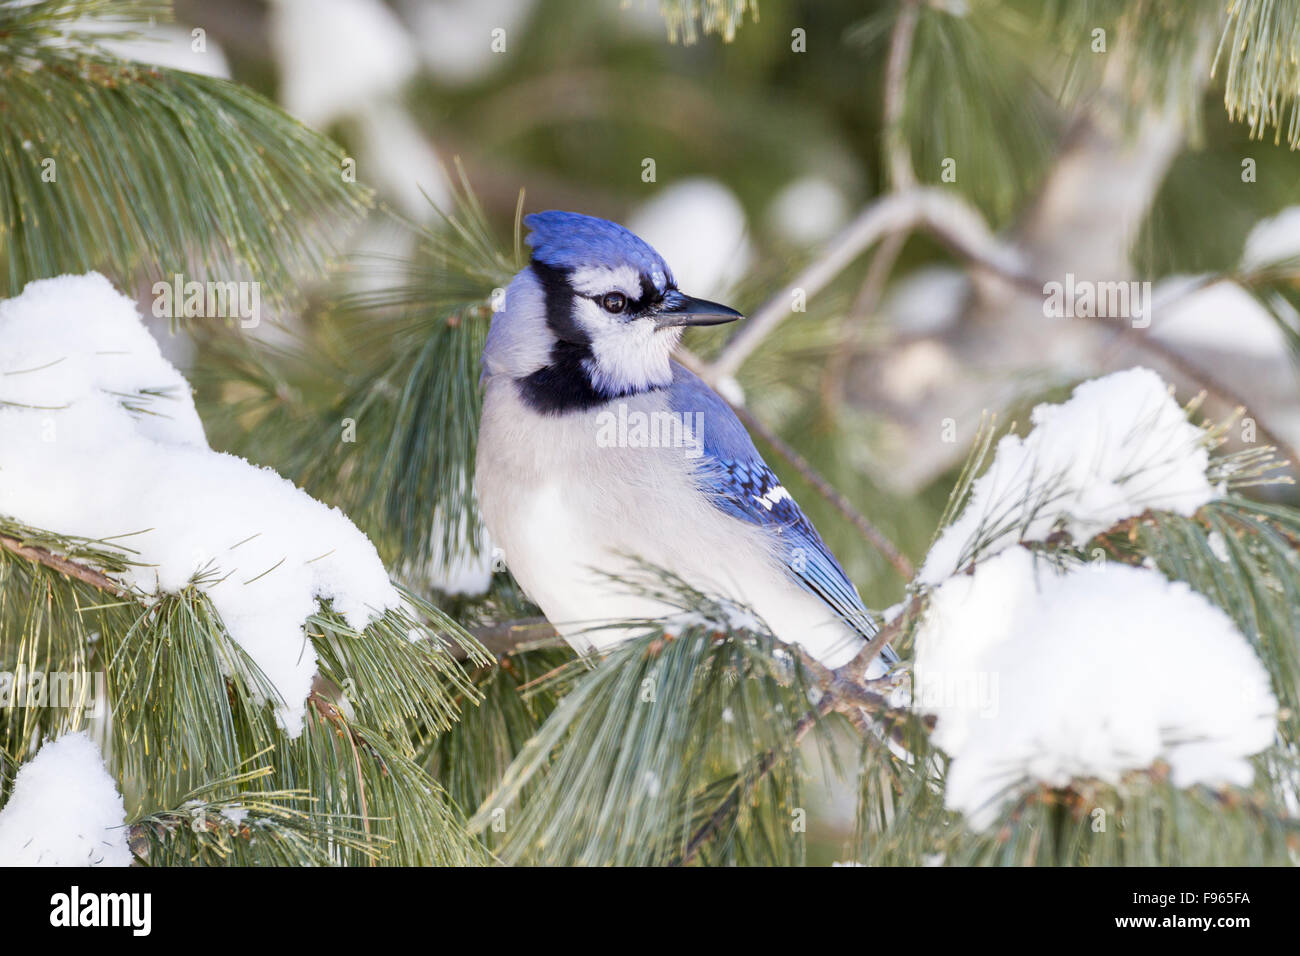 Blue Jay (Cyanocitta cristata) in a snowy pine tree in Algonquin Provincial Park, Ontario, Canada - Stock Image